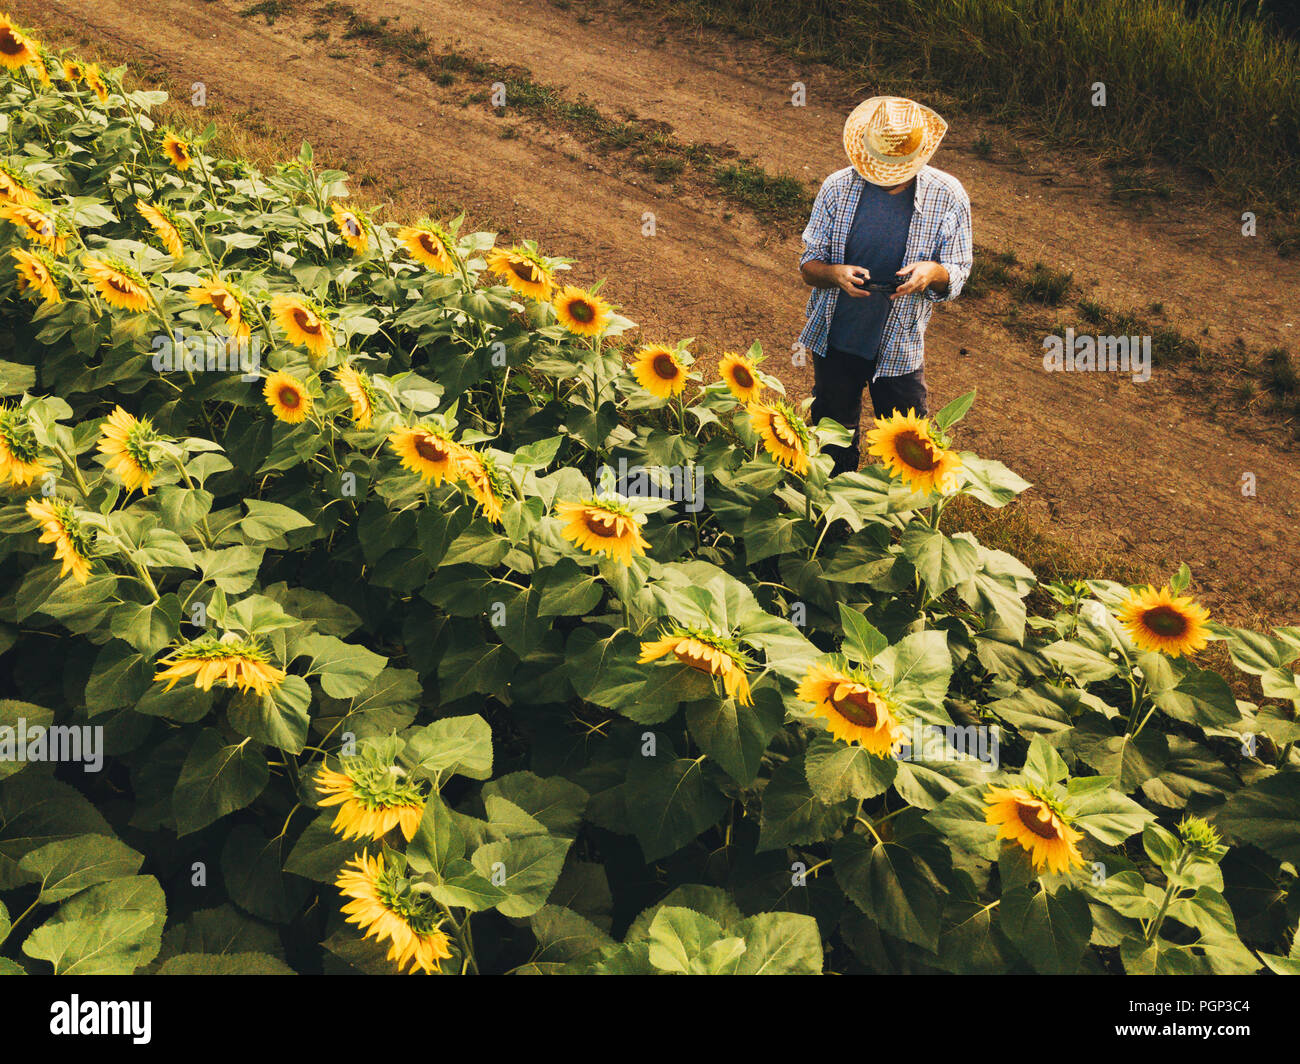 Farmer agronomist using drone to examine blooming of sunflower crops in field from above, using modern technology in agriculture and food production i - Stock Image